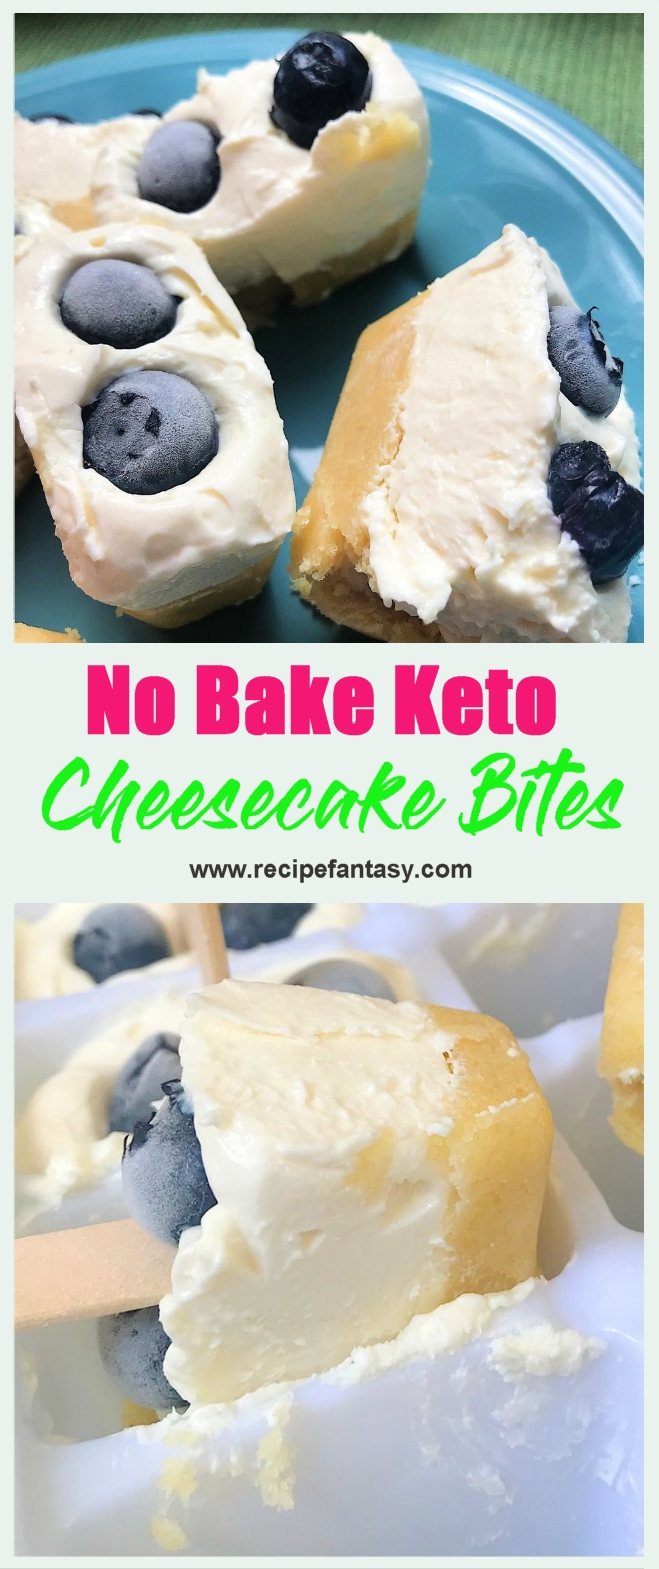 No Bake Keto Cheesecake Bites